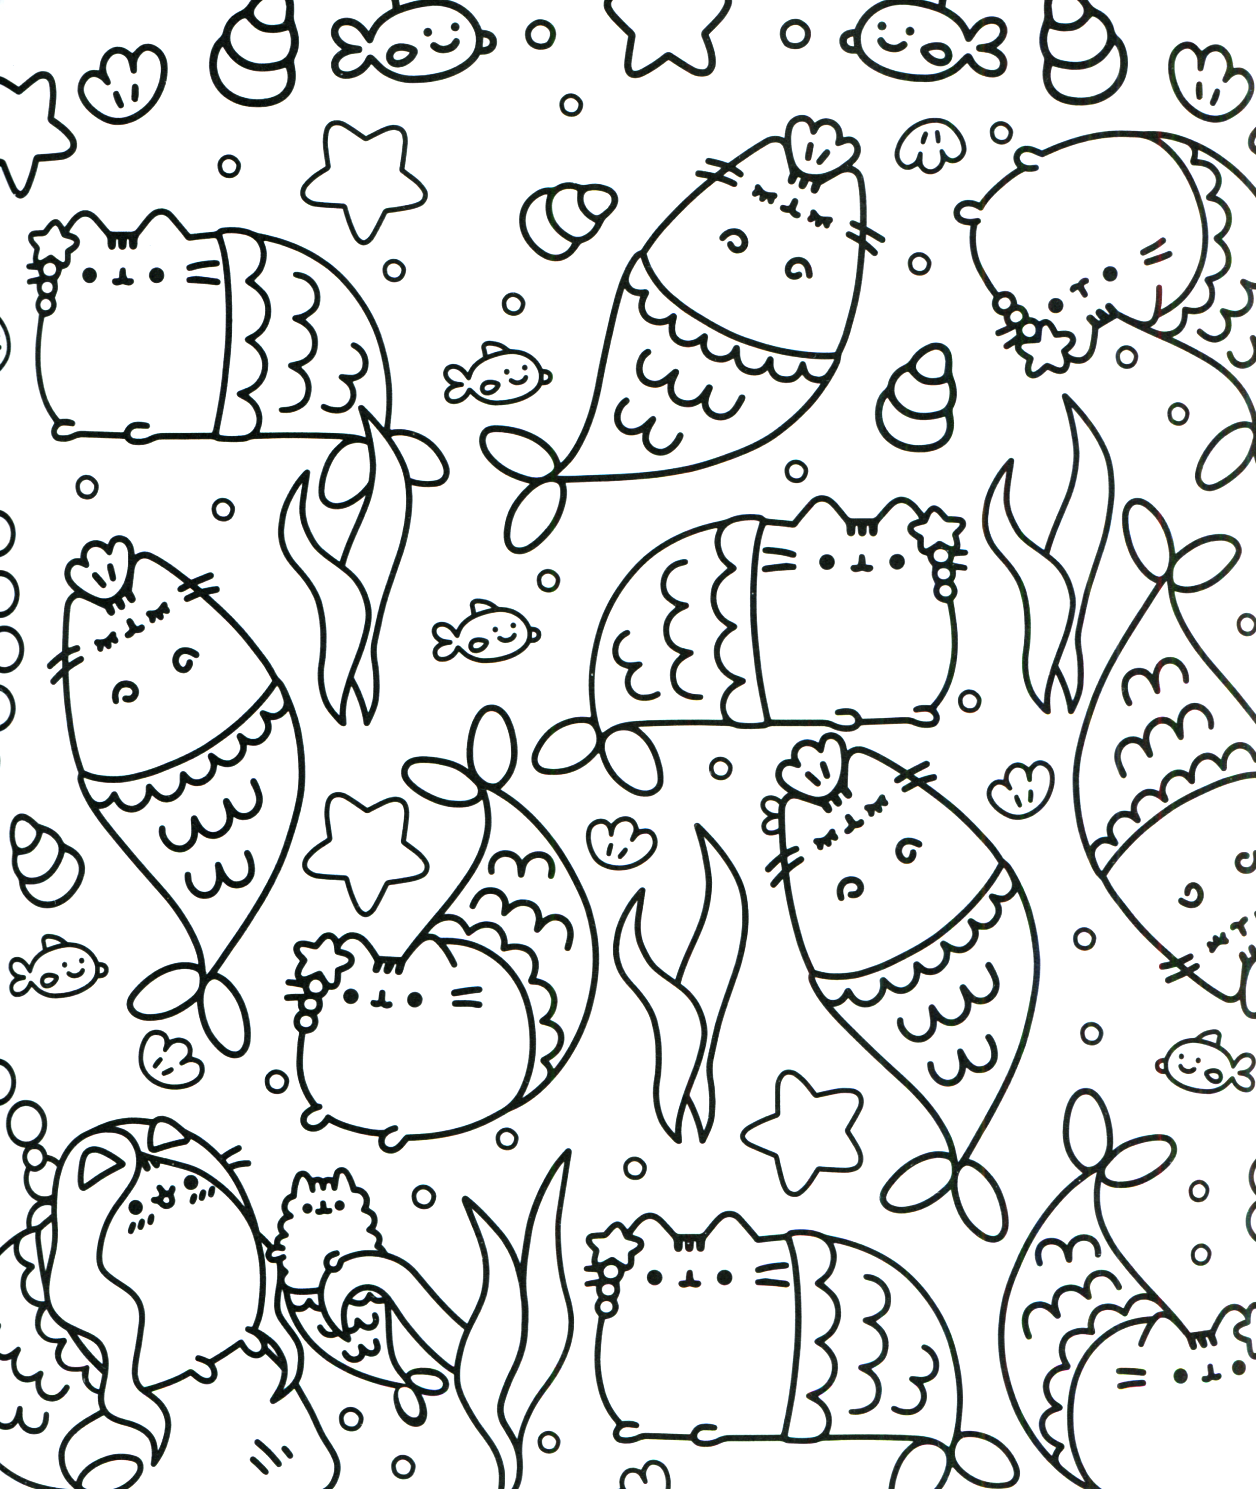 Pusheen Coloring Pages Coloring Rocks Pusheen Coloring Pages Mermaid Coloring Pages Unicorn Coloring Pages